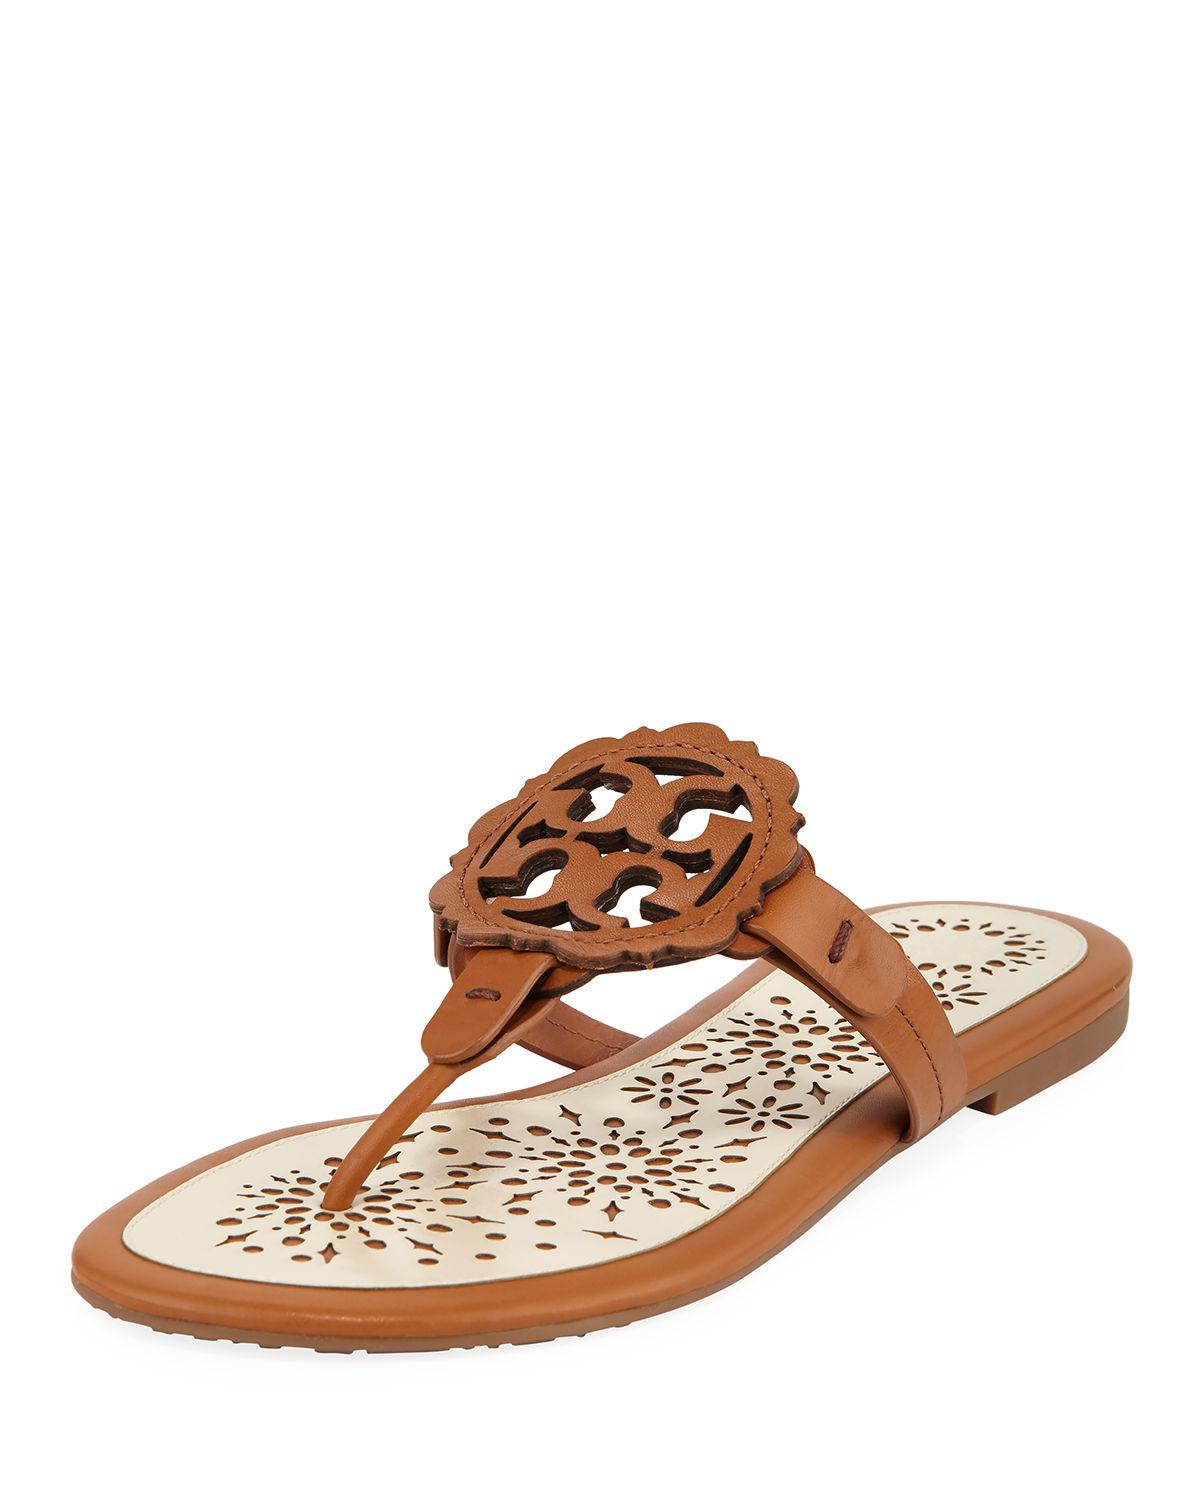 797fabc49903 Tory Burch Women s Miller Scallop Leather Thong Sandals In Tan  New ...